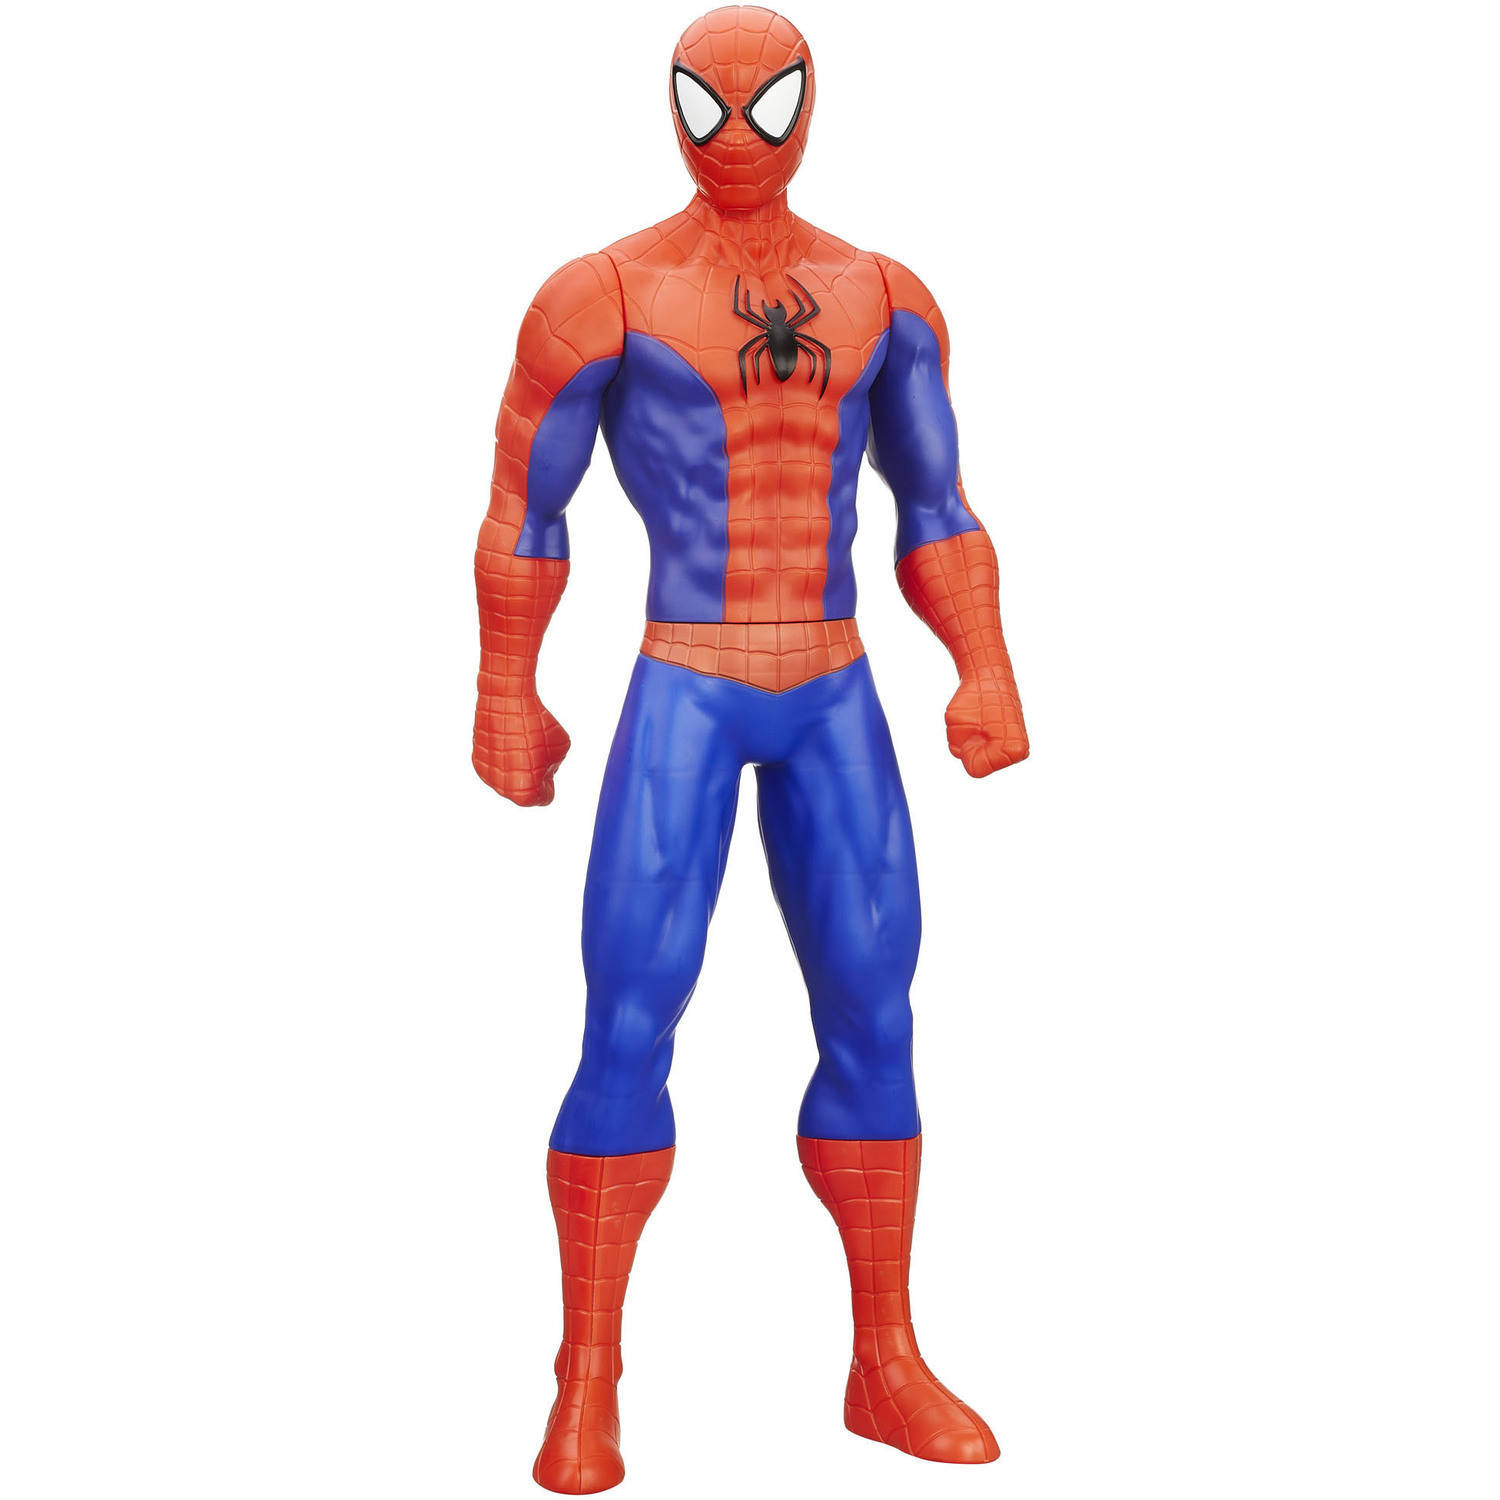 "Marvel Spider-Man Titan Hero Series 20"" Spider-Man Figure"